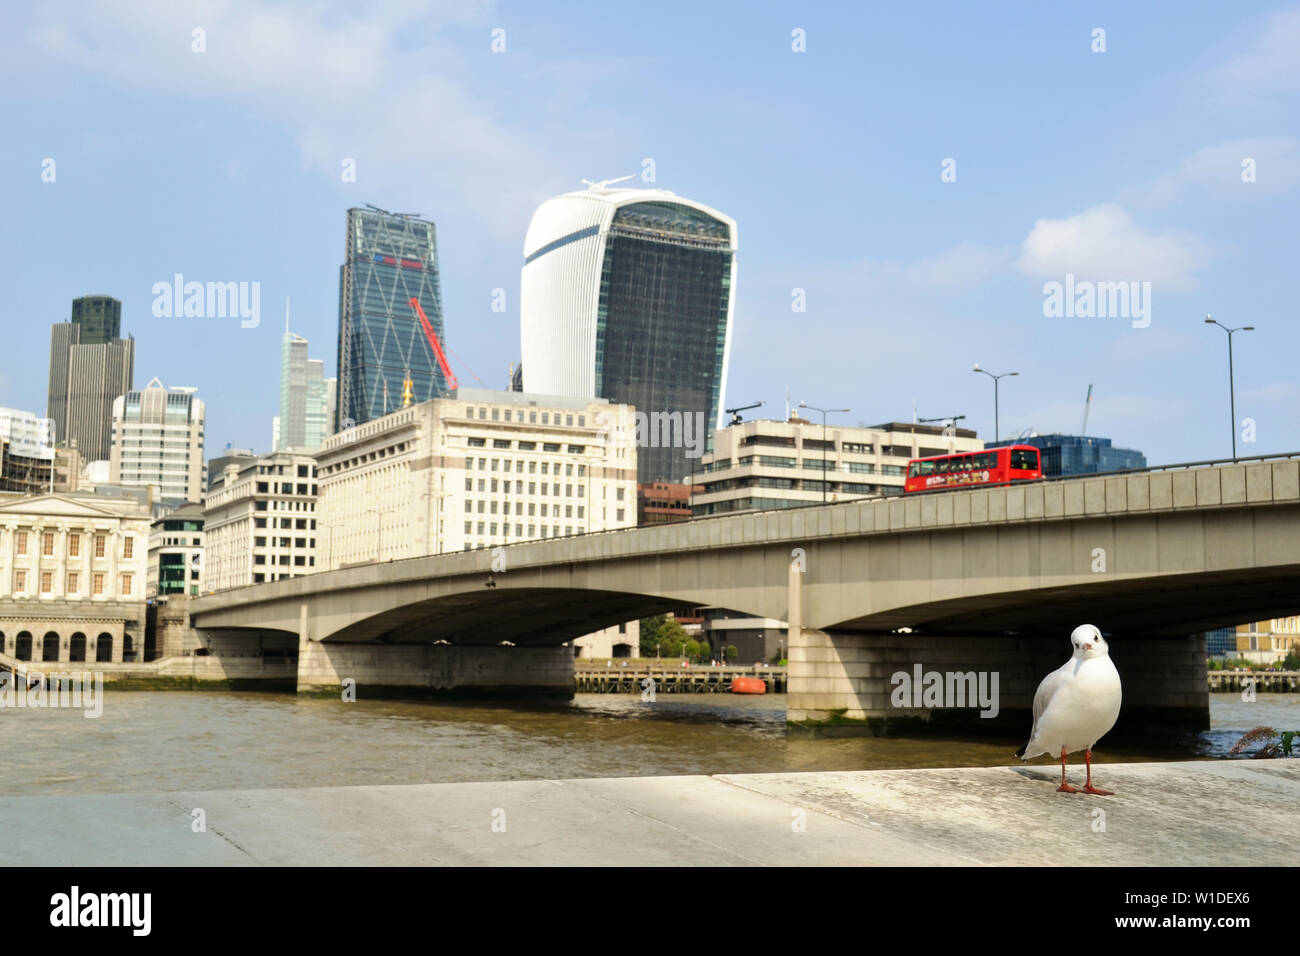 London/UK - September 7, 2014: White seagull standing on riverbank with the City of London, Thames river  and the London bridge in background. Stock Photo